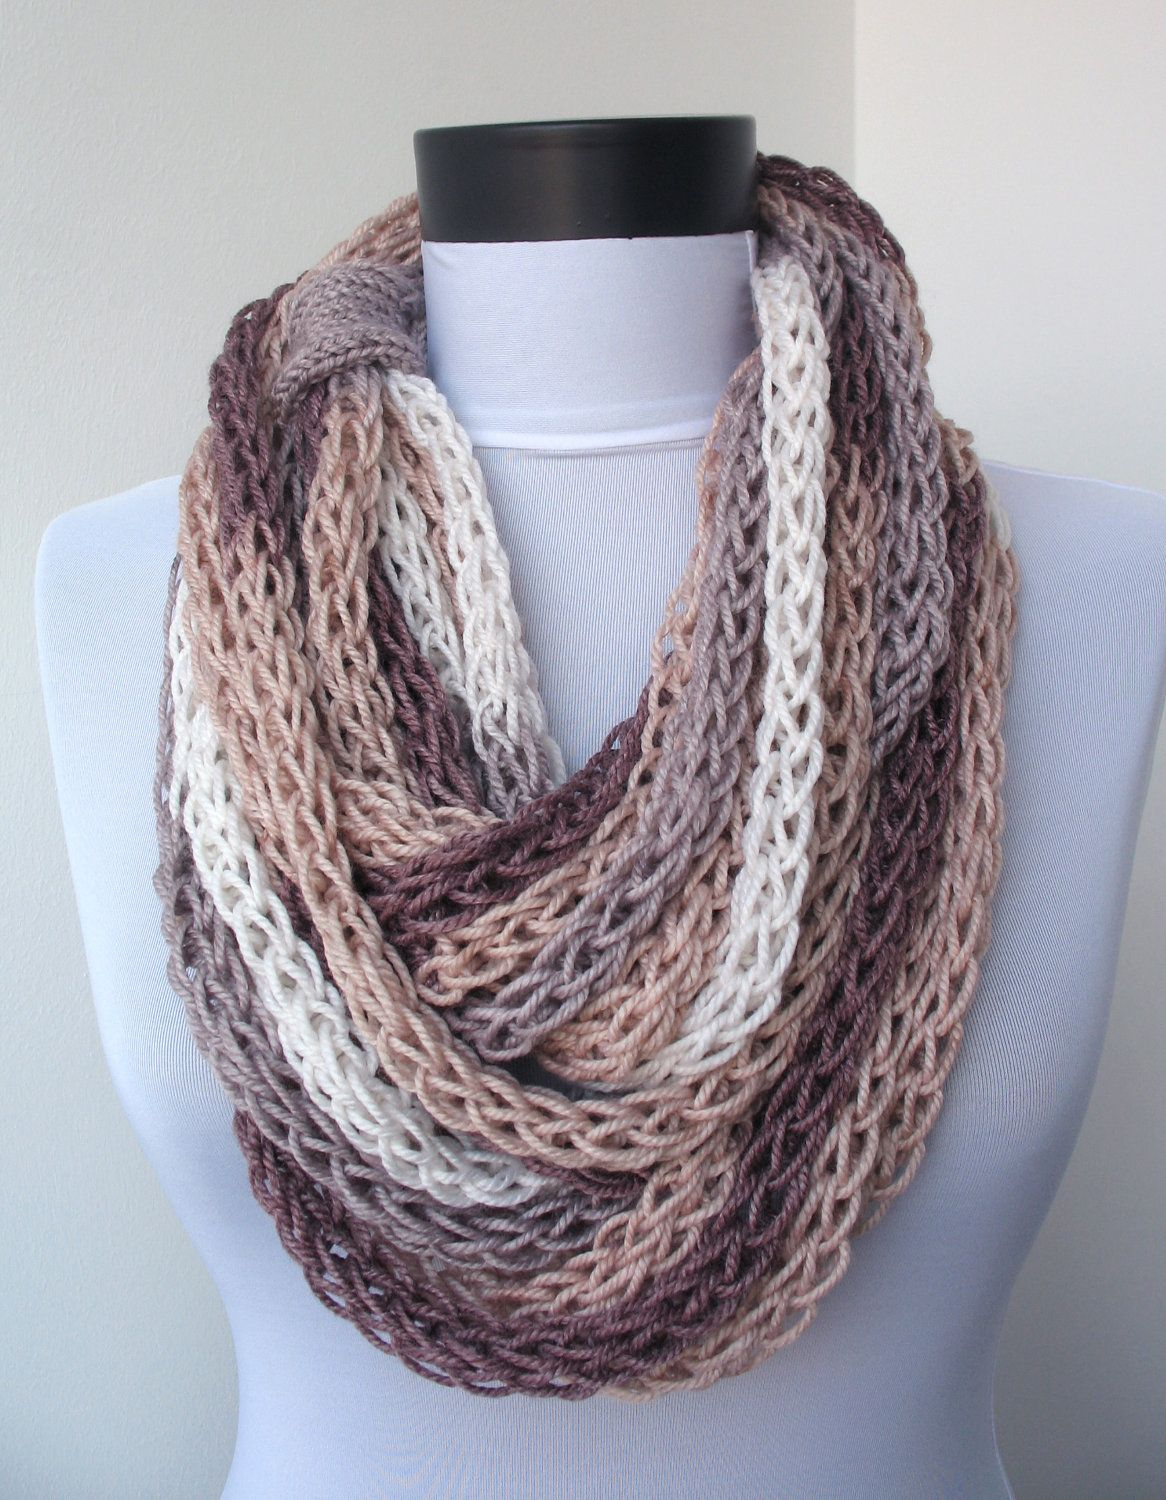 Knitting Rope For Sale : Moved item scarf necklace loop infinity